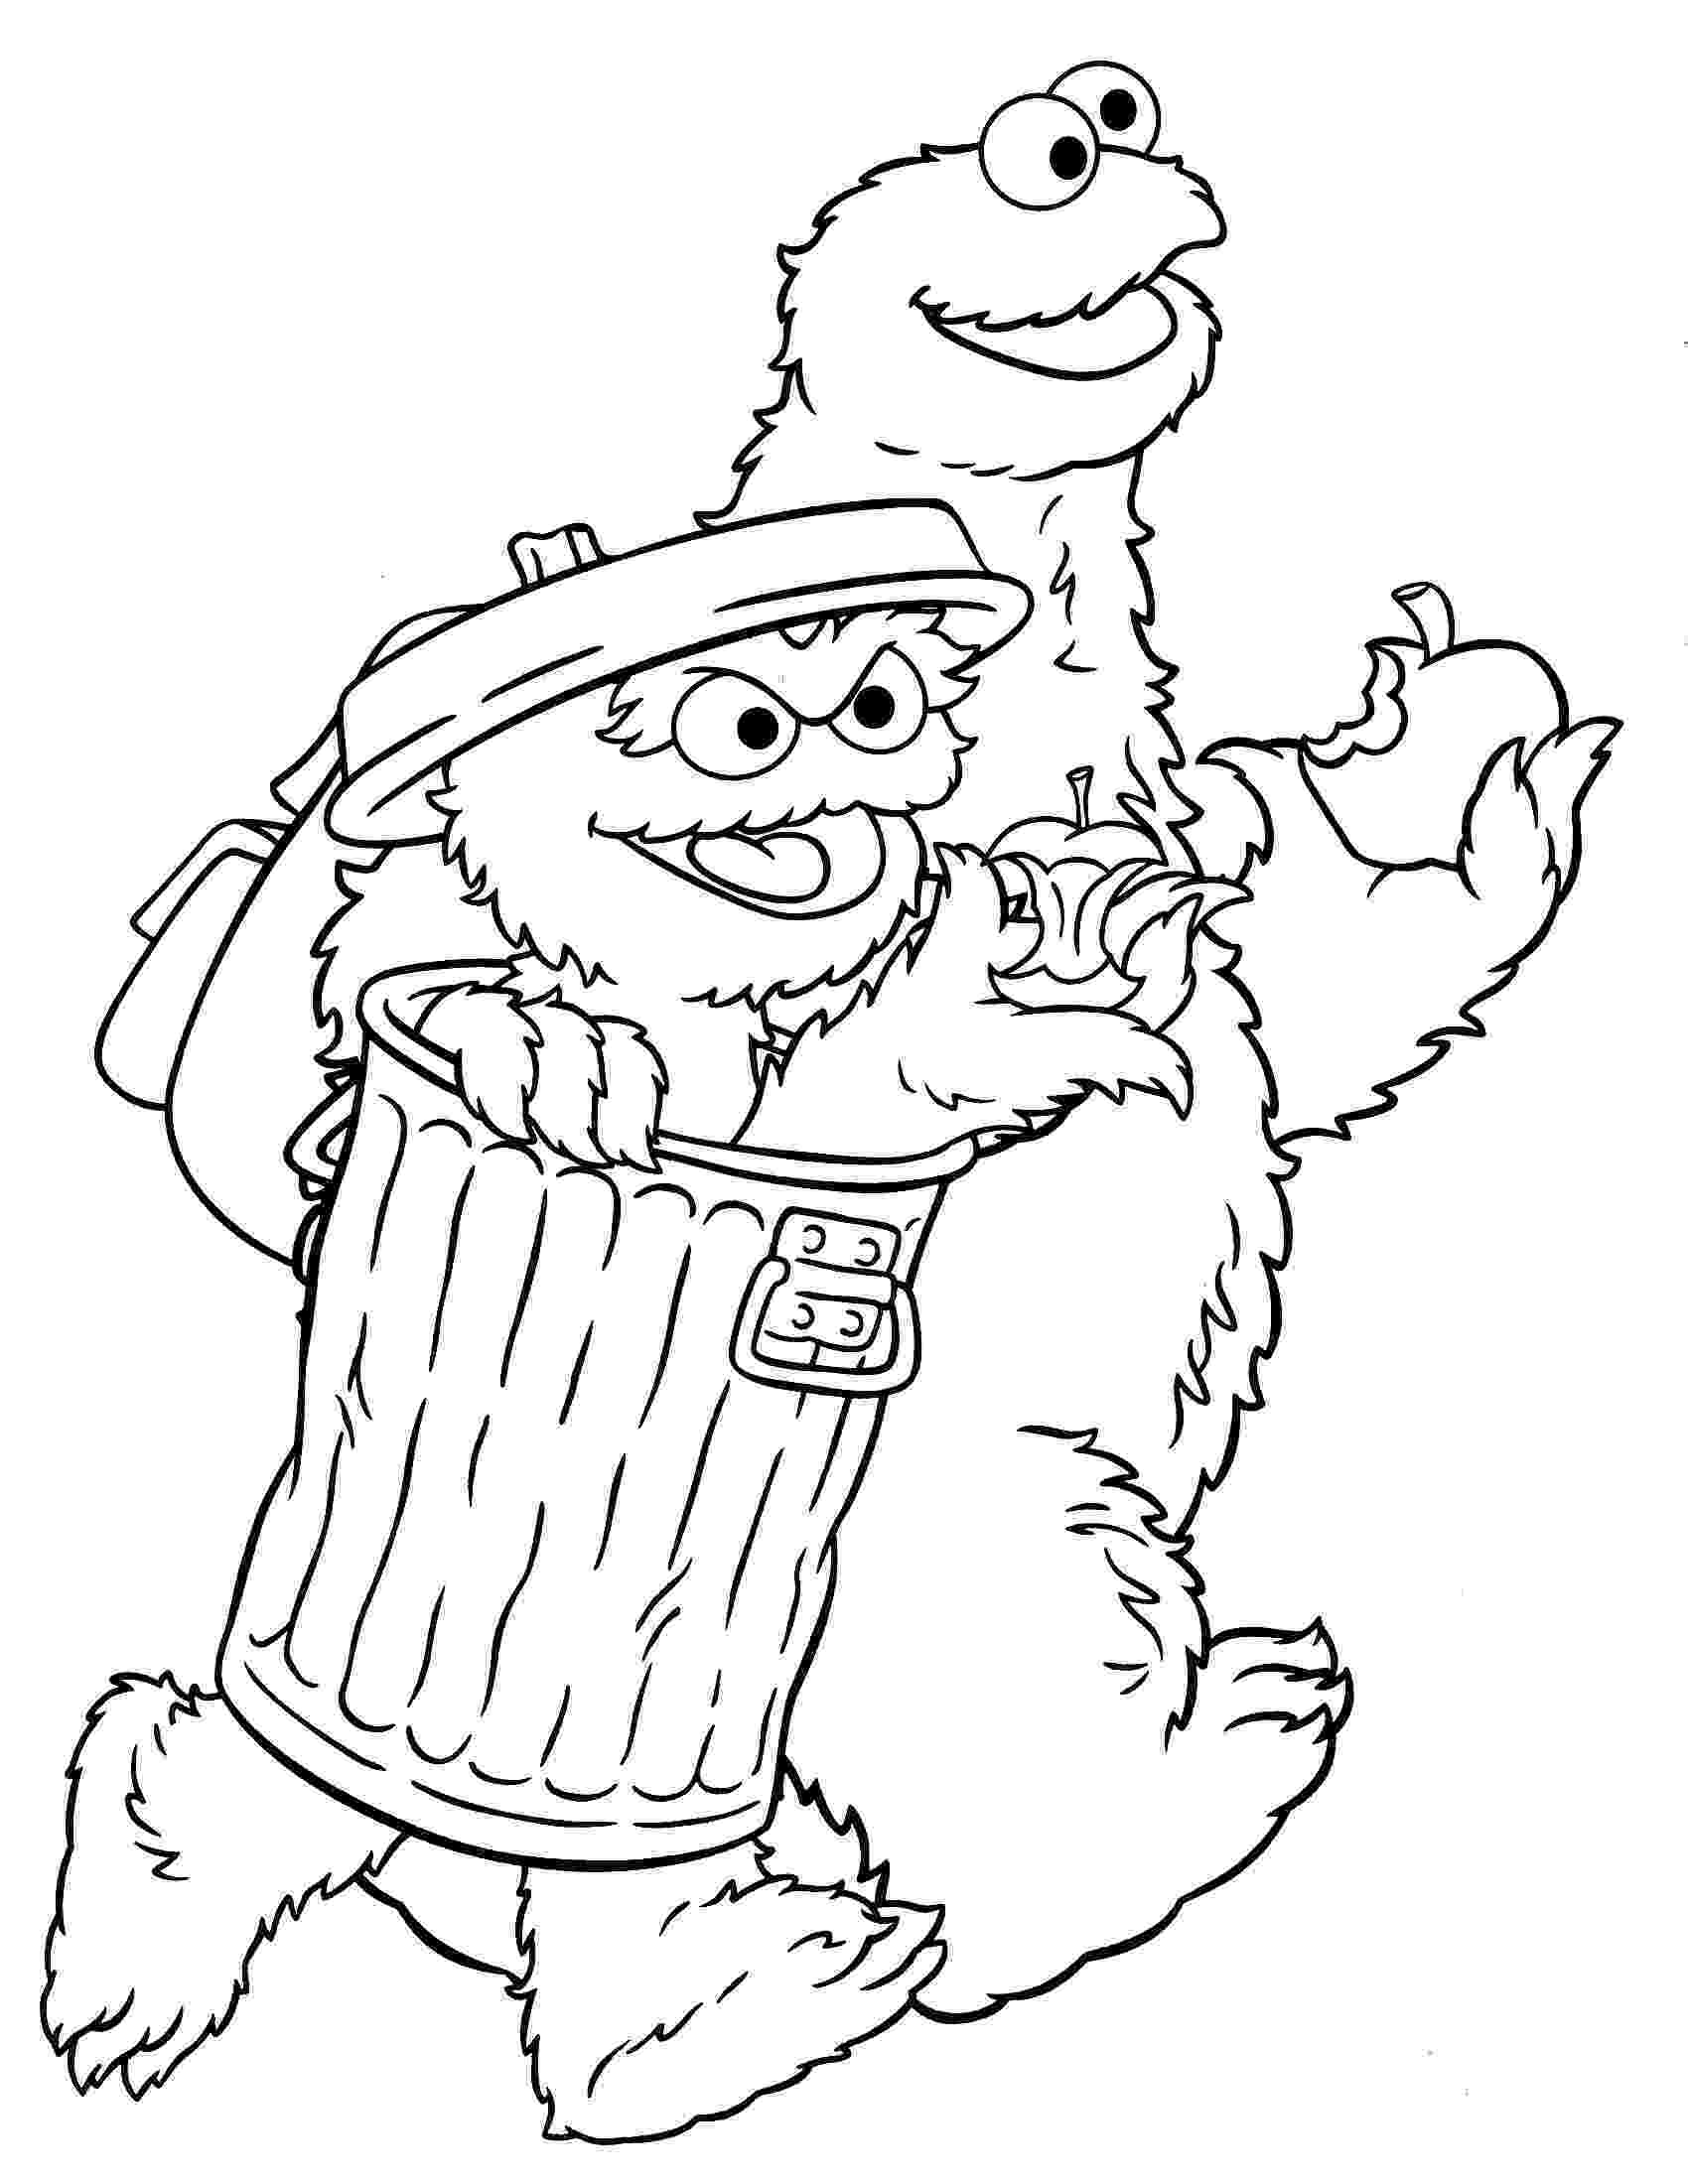 coloring pages of sesame street characters sesame street coloring pages minister coloring coloring pages of sesame characters street